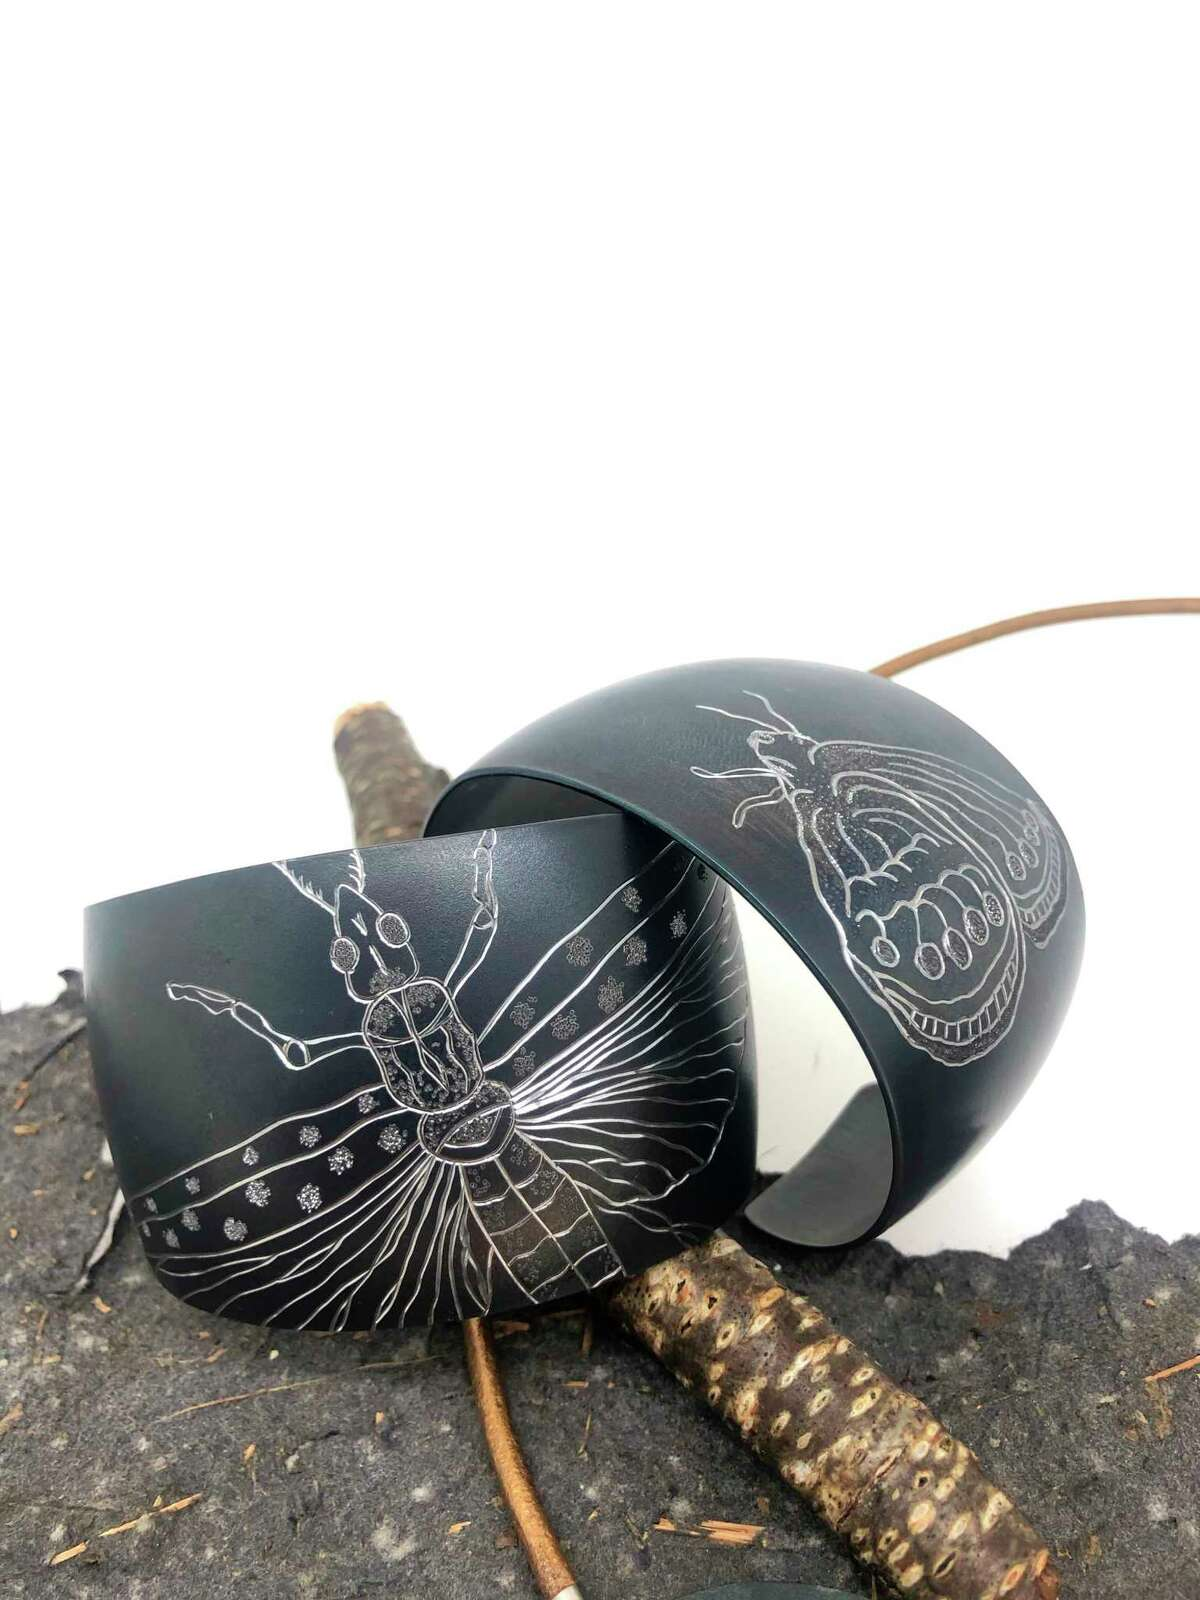 Michigan jewelry designer Becky Thatcher has released a collection to raise awareness of an protect endangered insects. (Courtesy Photo)